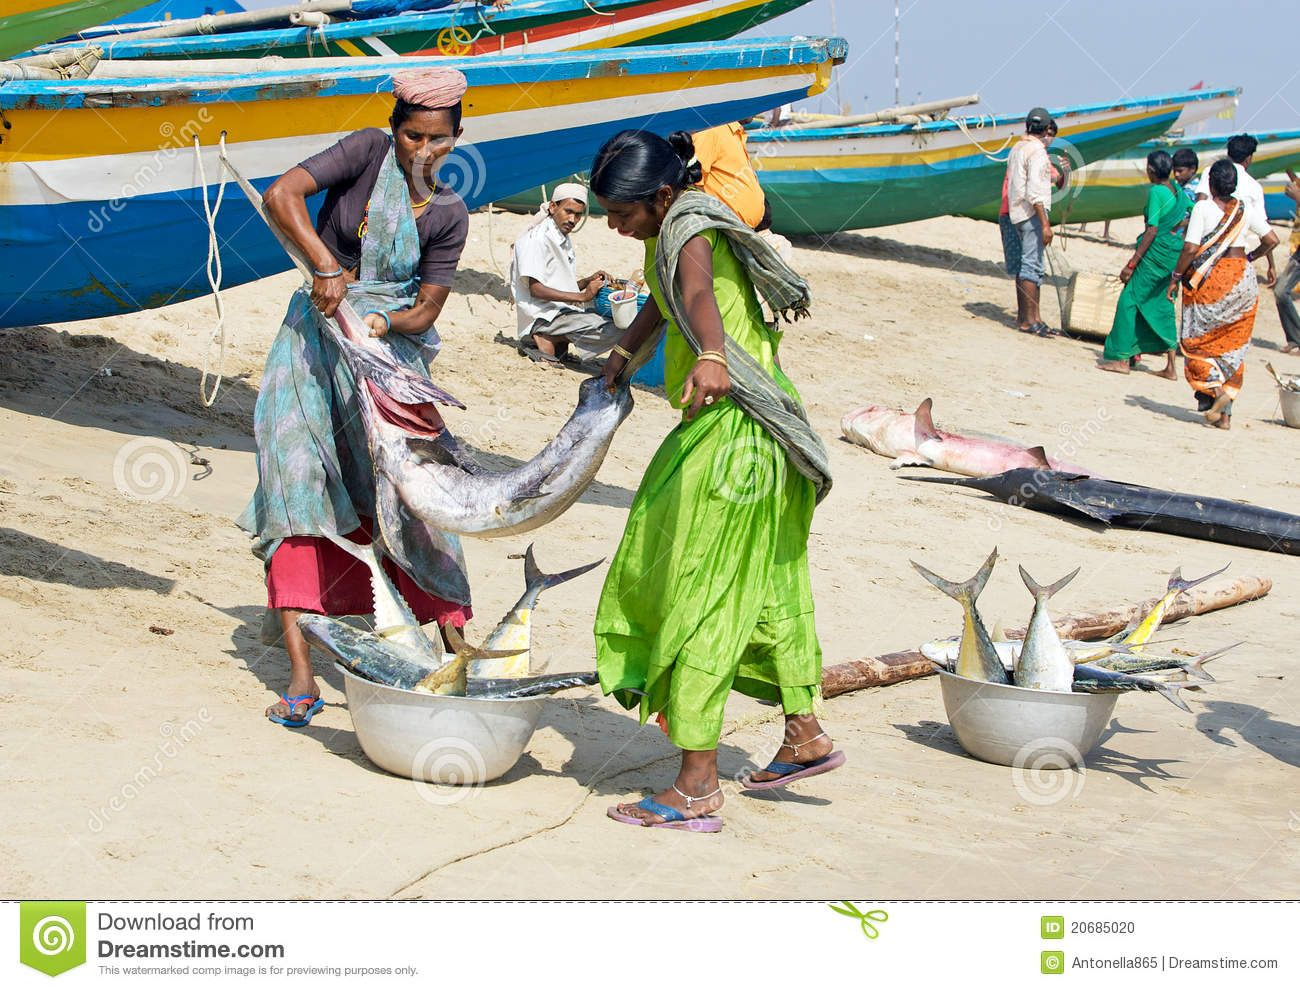 Women With Fishes At The Fish Market/India, fisherman